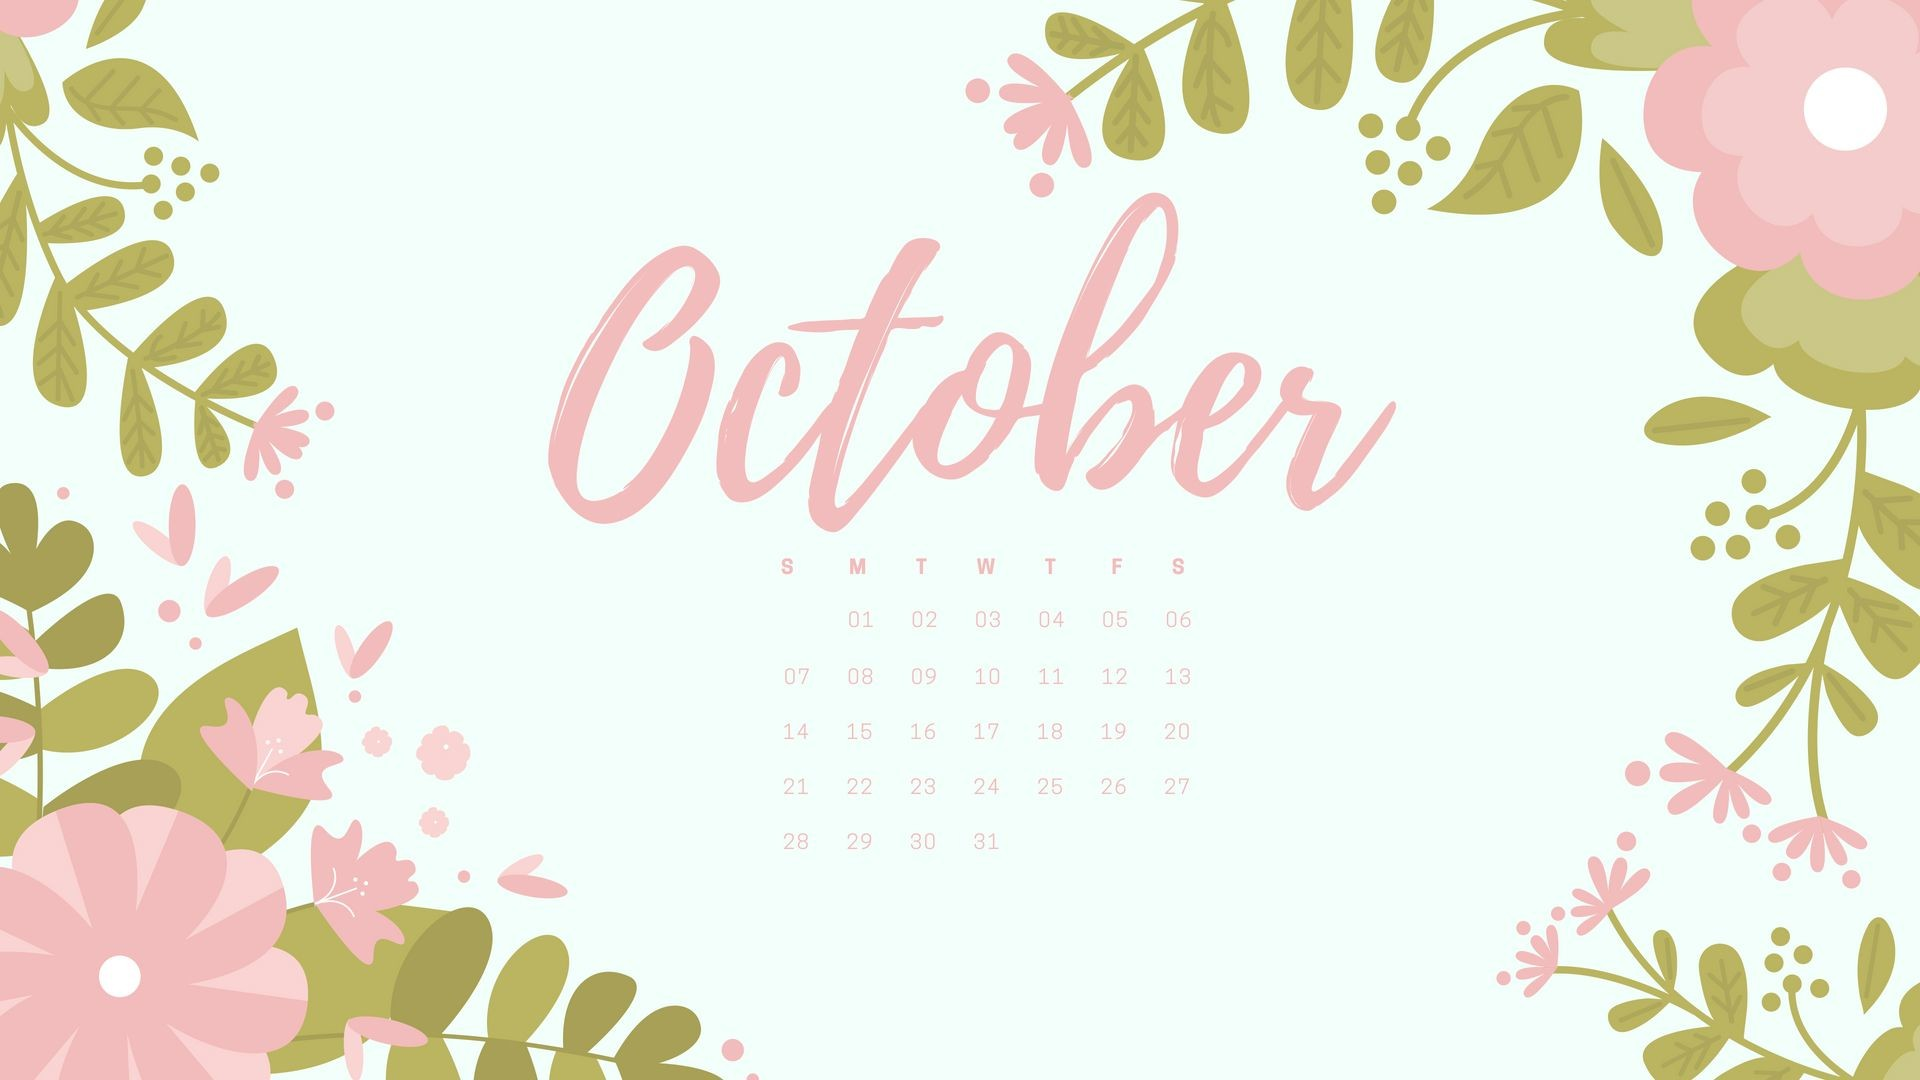 Desktop Wallpapers Calendar October 2018 72 Pictures